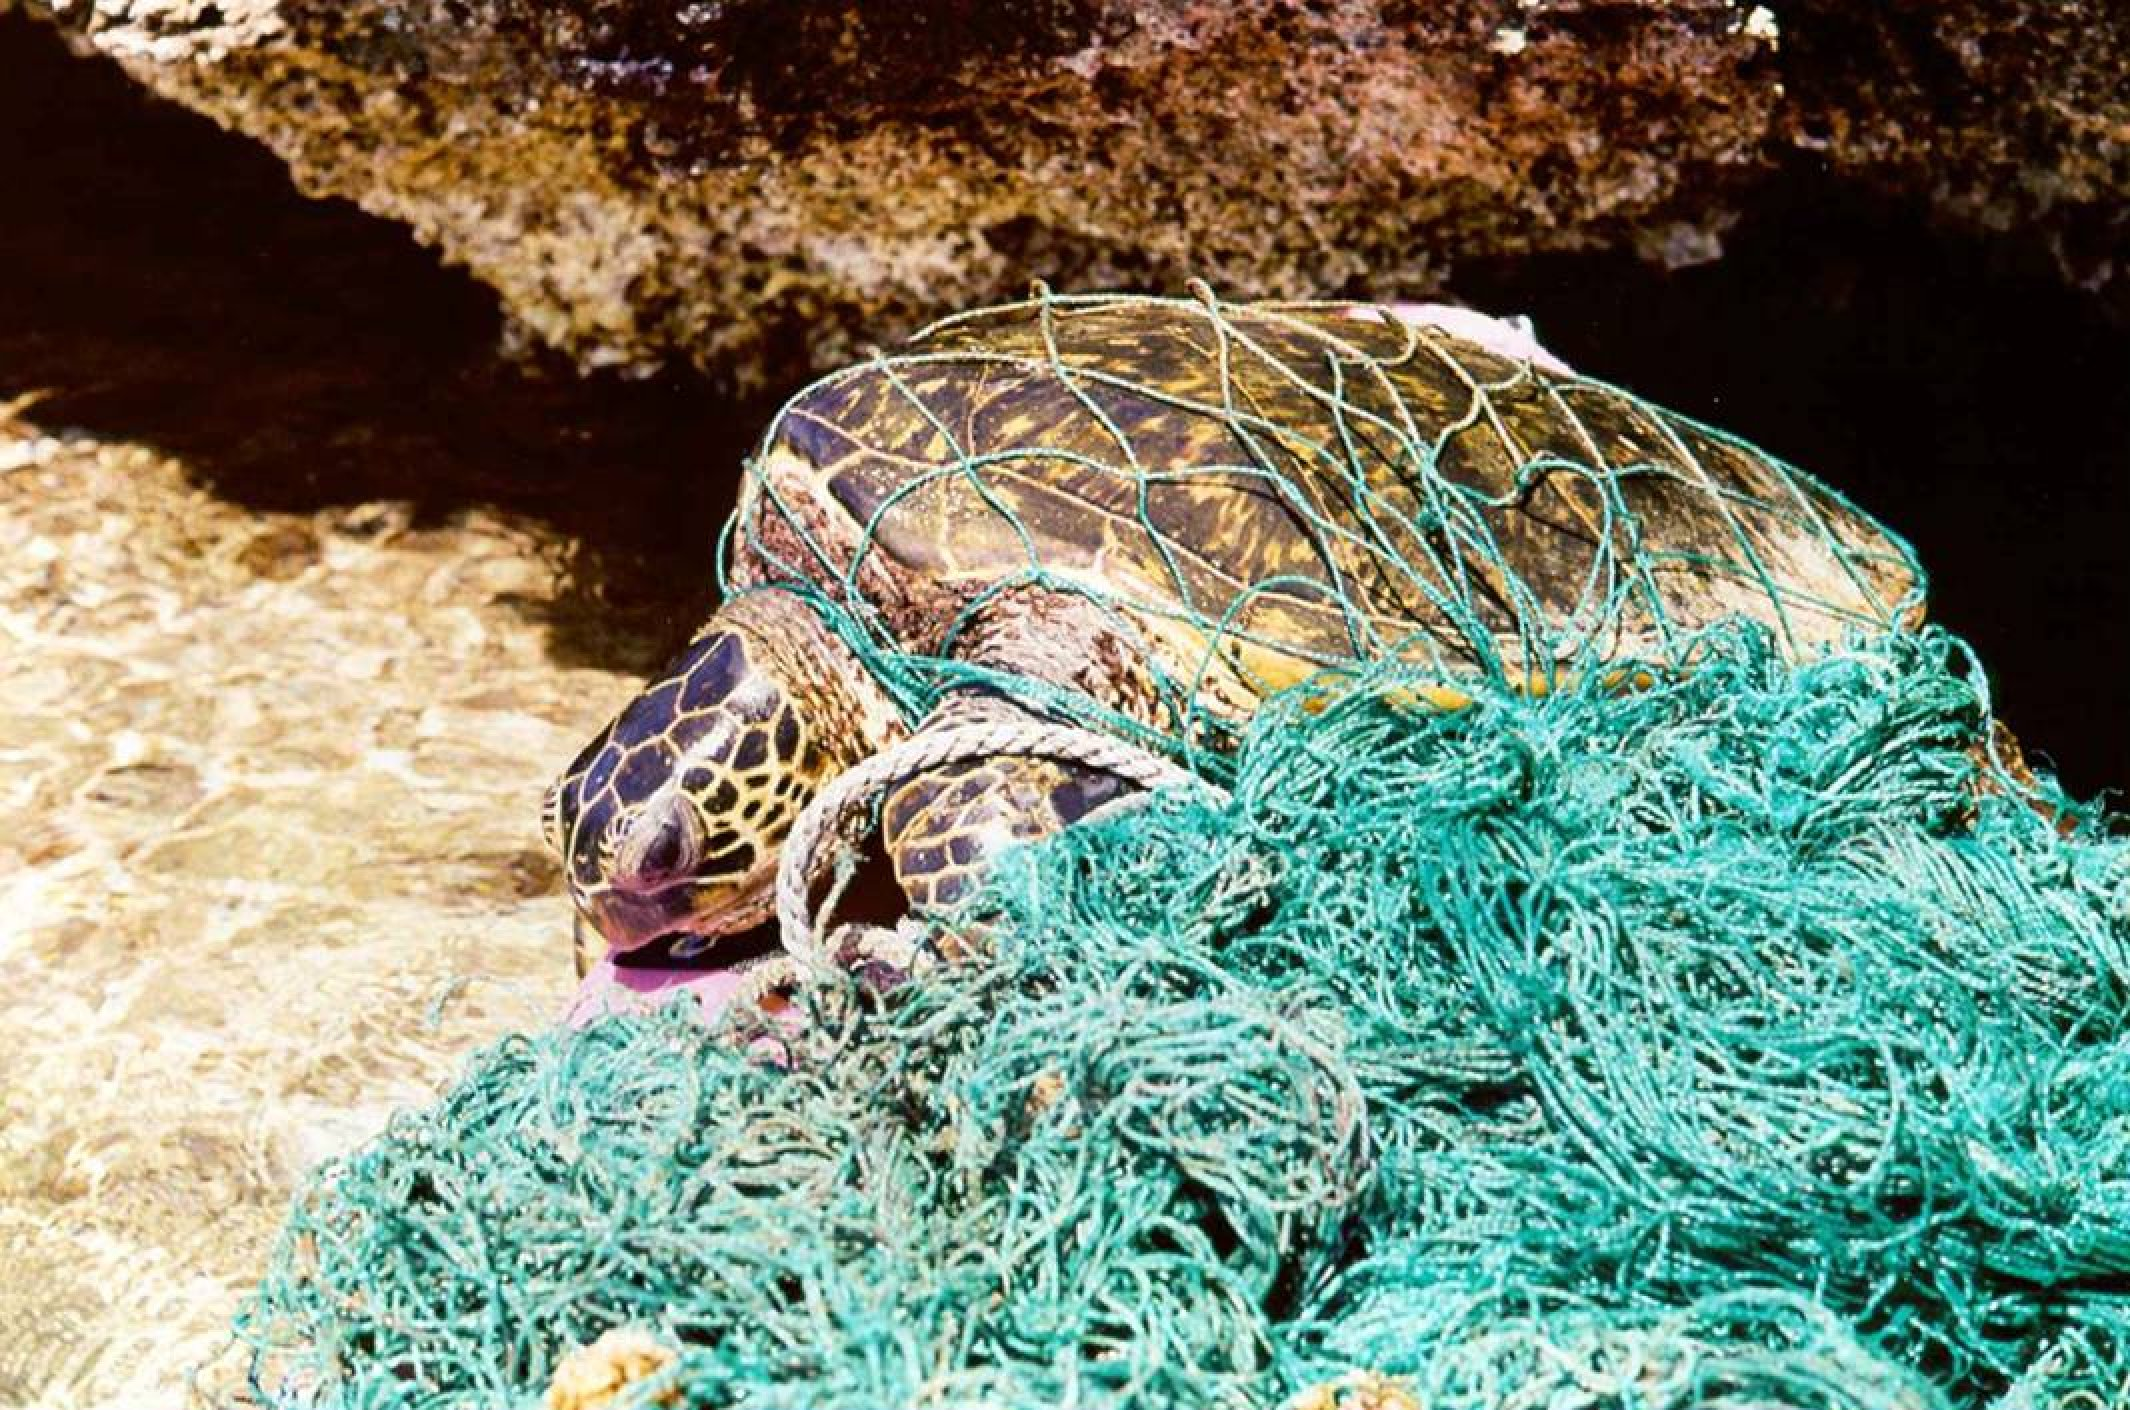 Abandoned fishing nets can be a threat not only for the fish but also for marine reptiles and mammals (Photo NOAA)